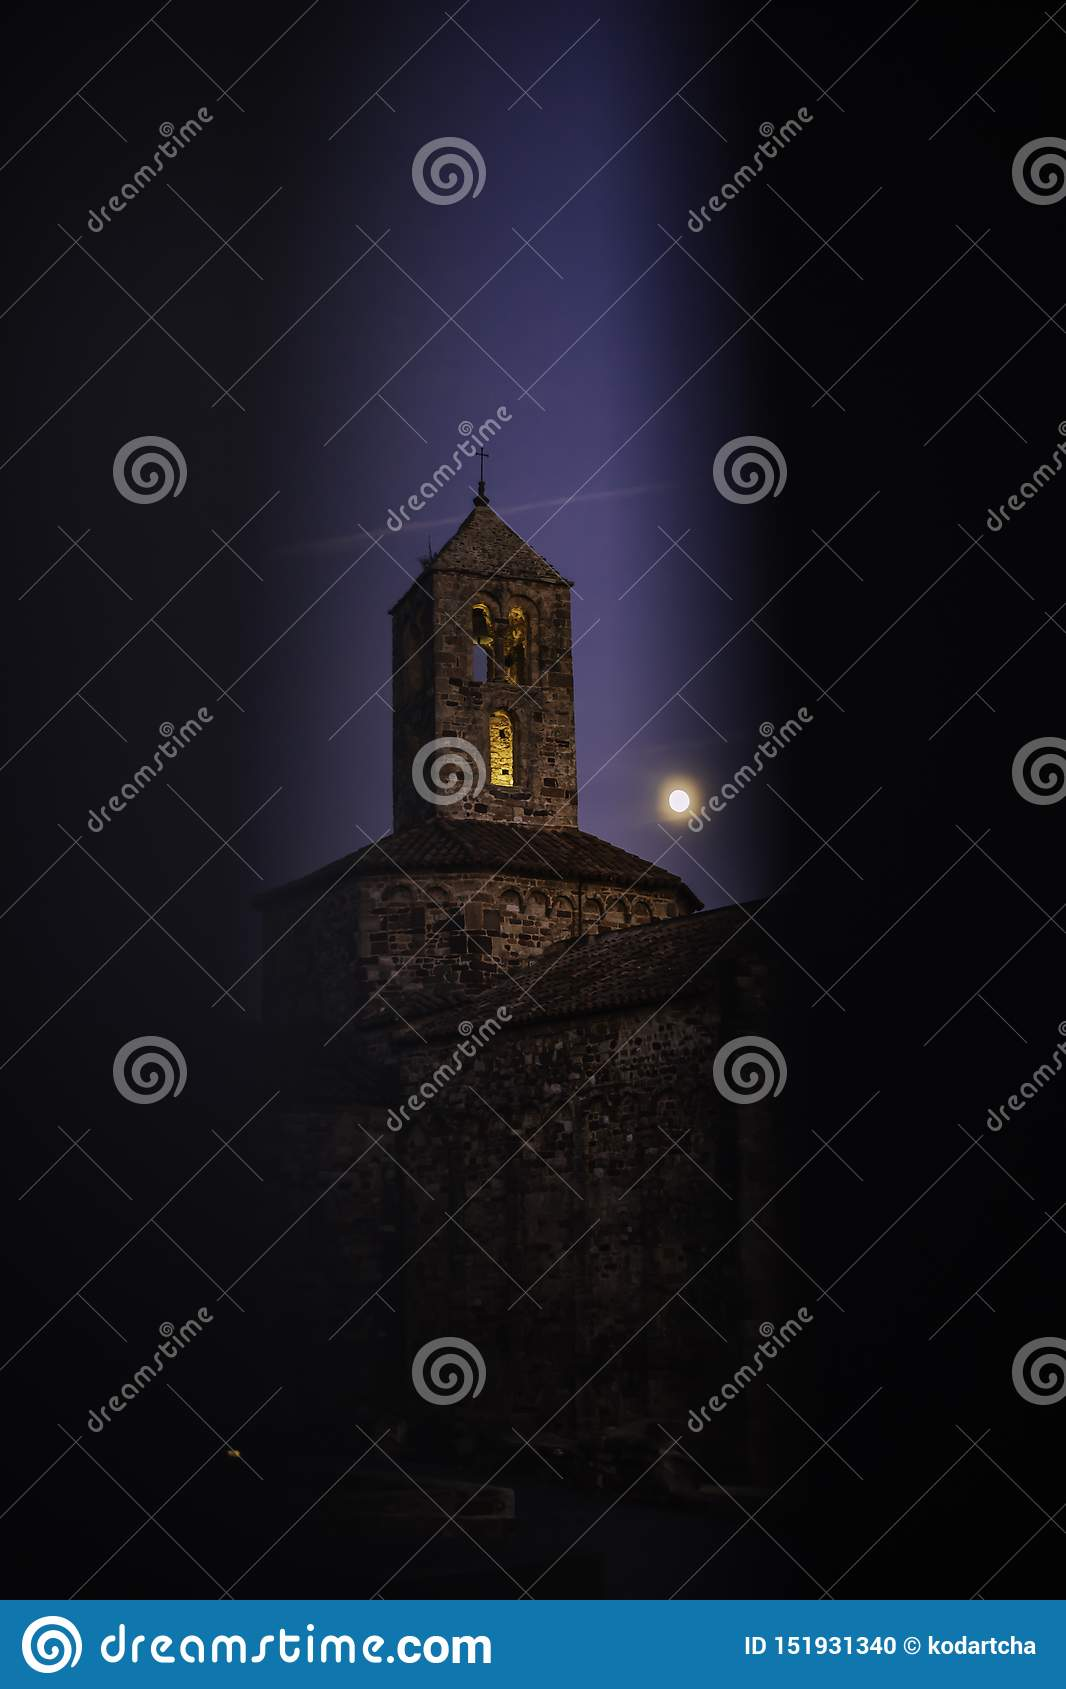 Old stone church on an evening with the moon close to the bell tower seen through gate